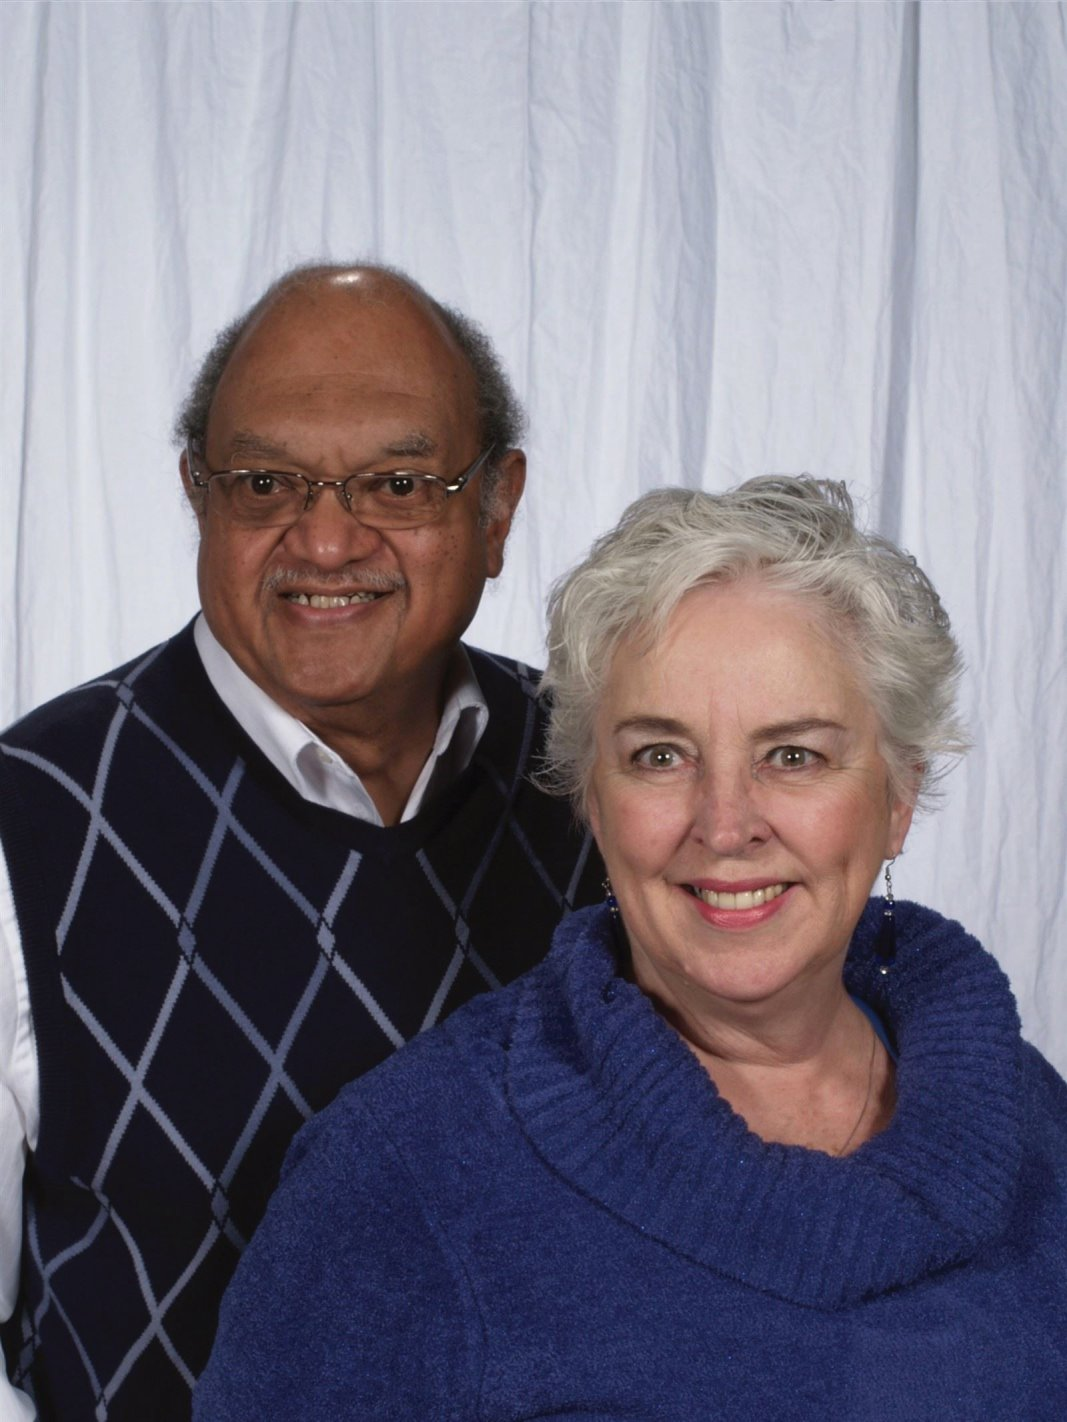 Revs. Eileen Douglas and Richard Talley, co-ministers and friends along the spiritual path.